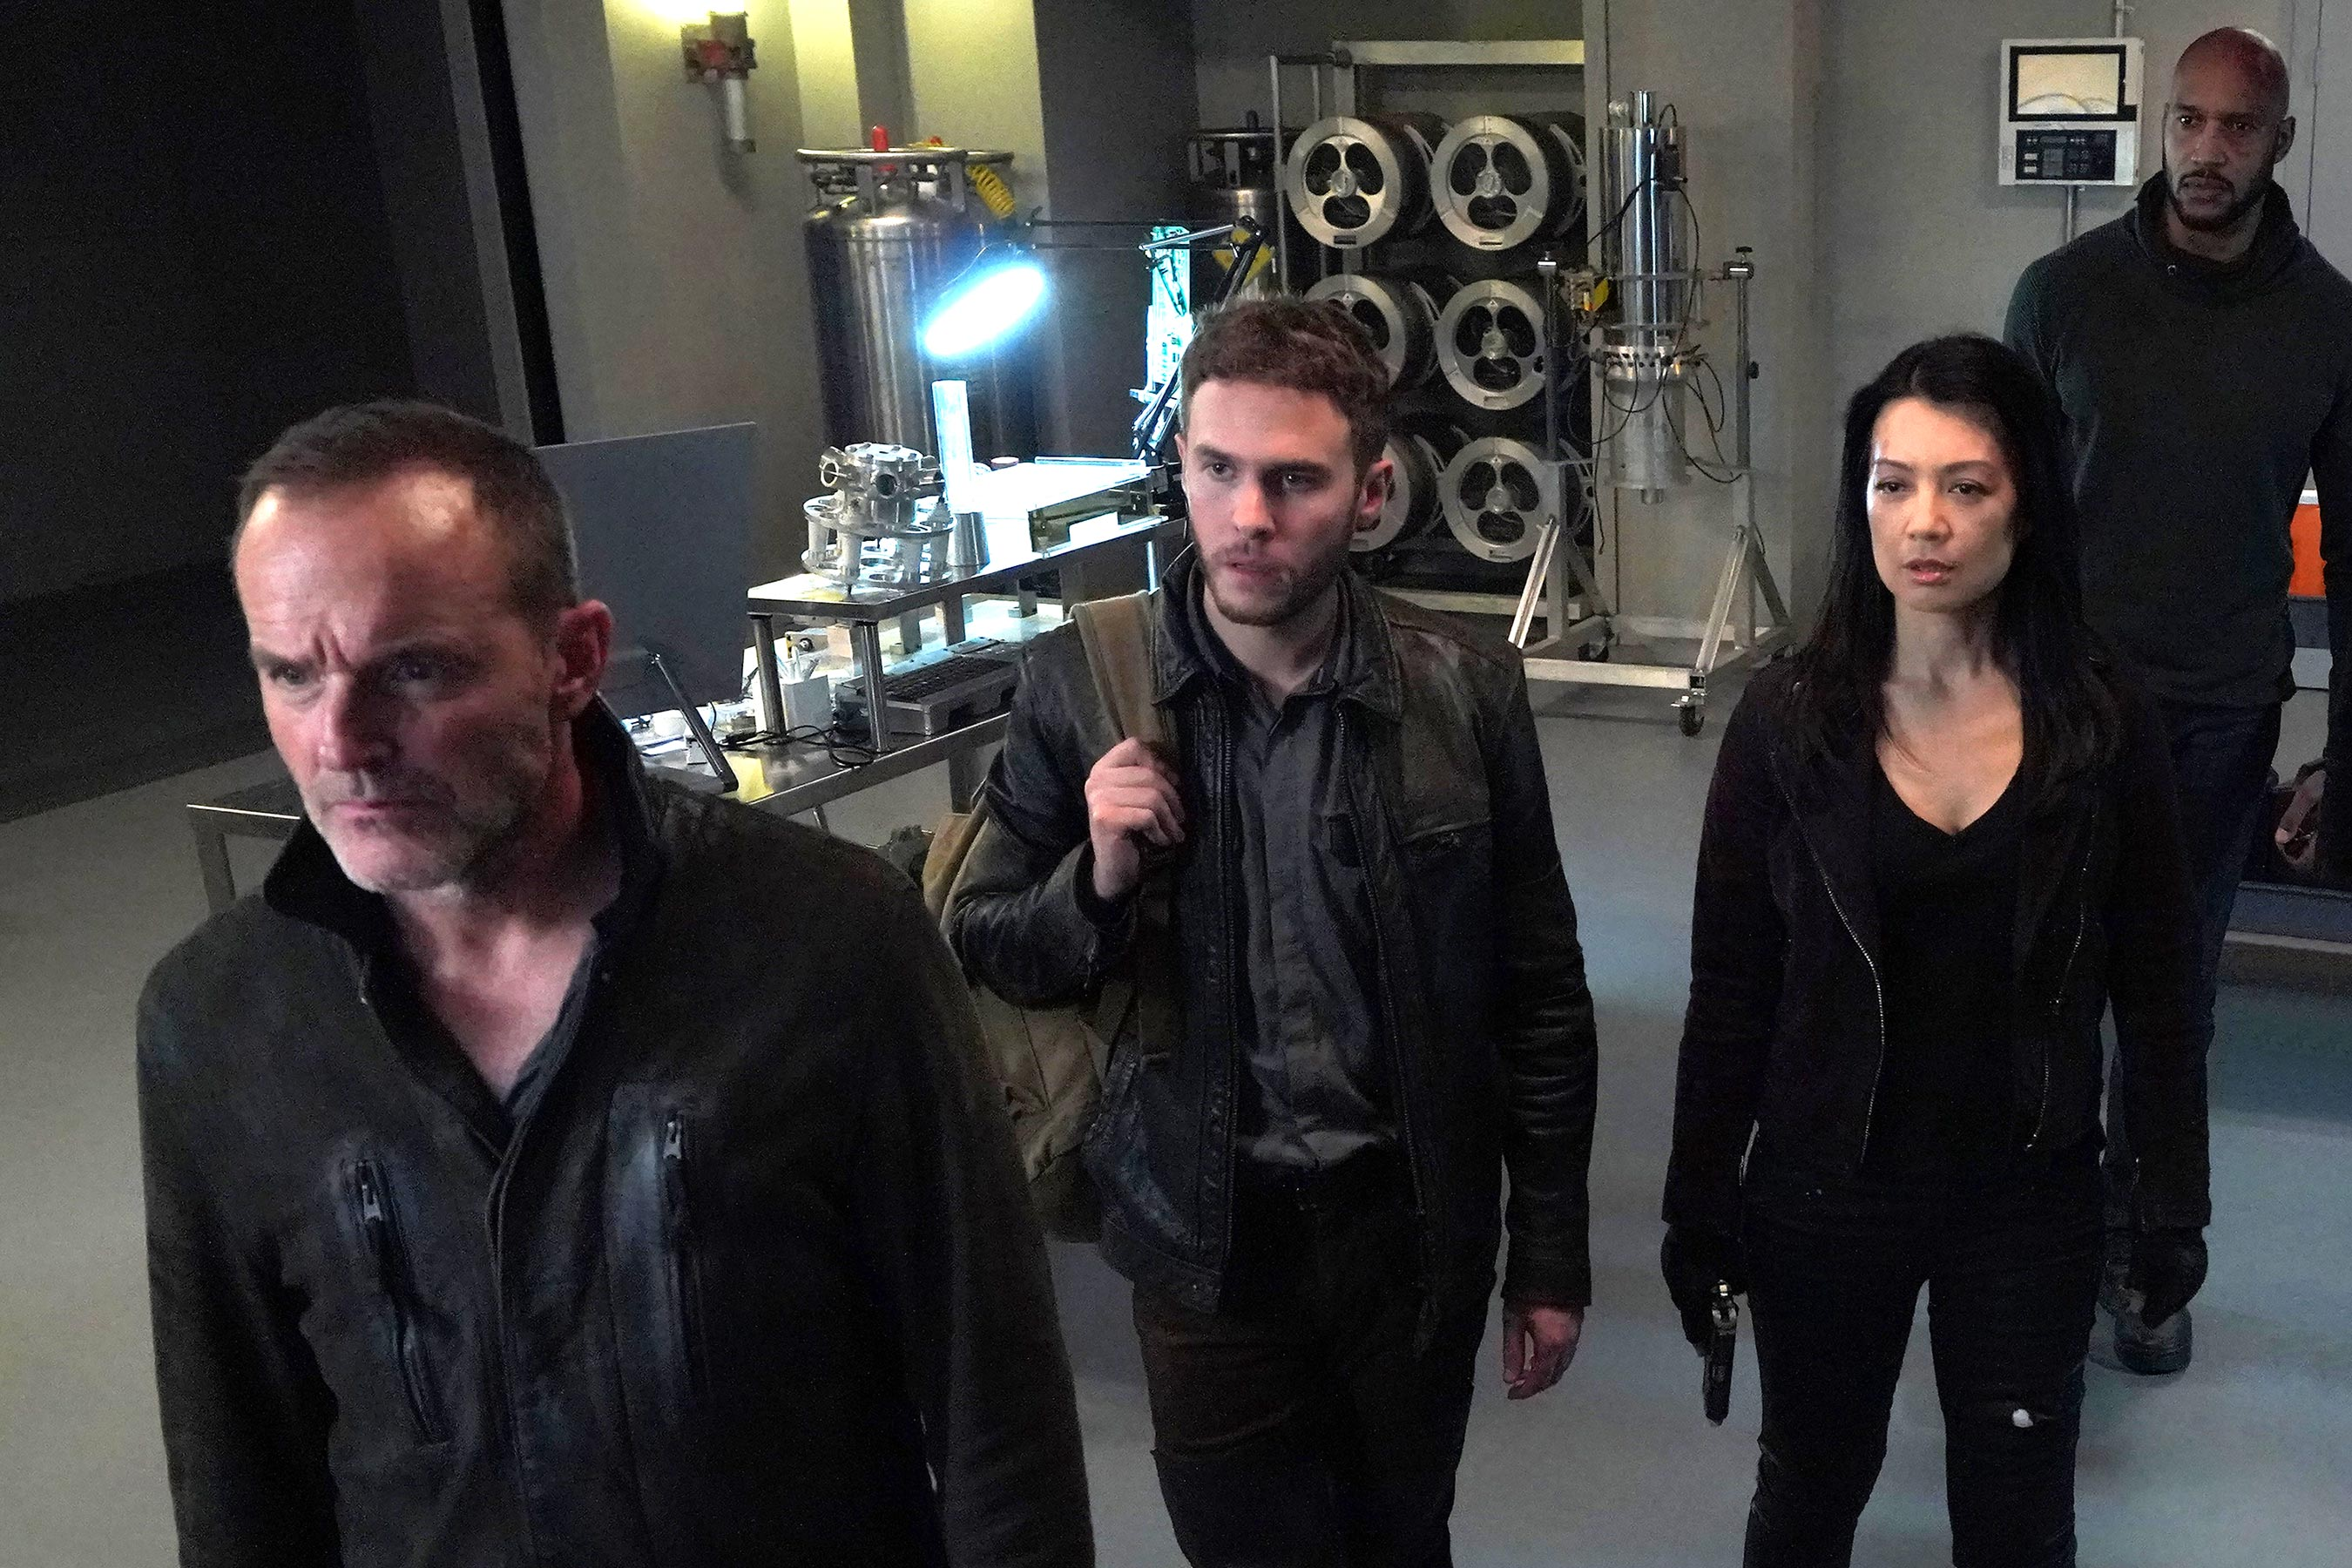 'Agents of S.H.I.E.L.D.': Can the future be prevented?